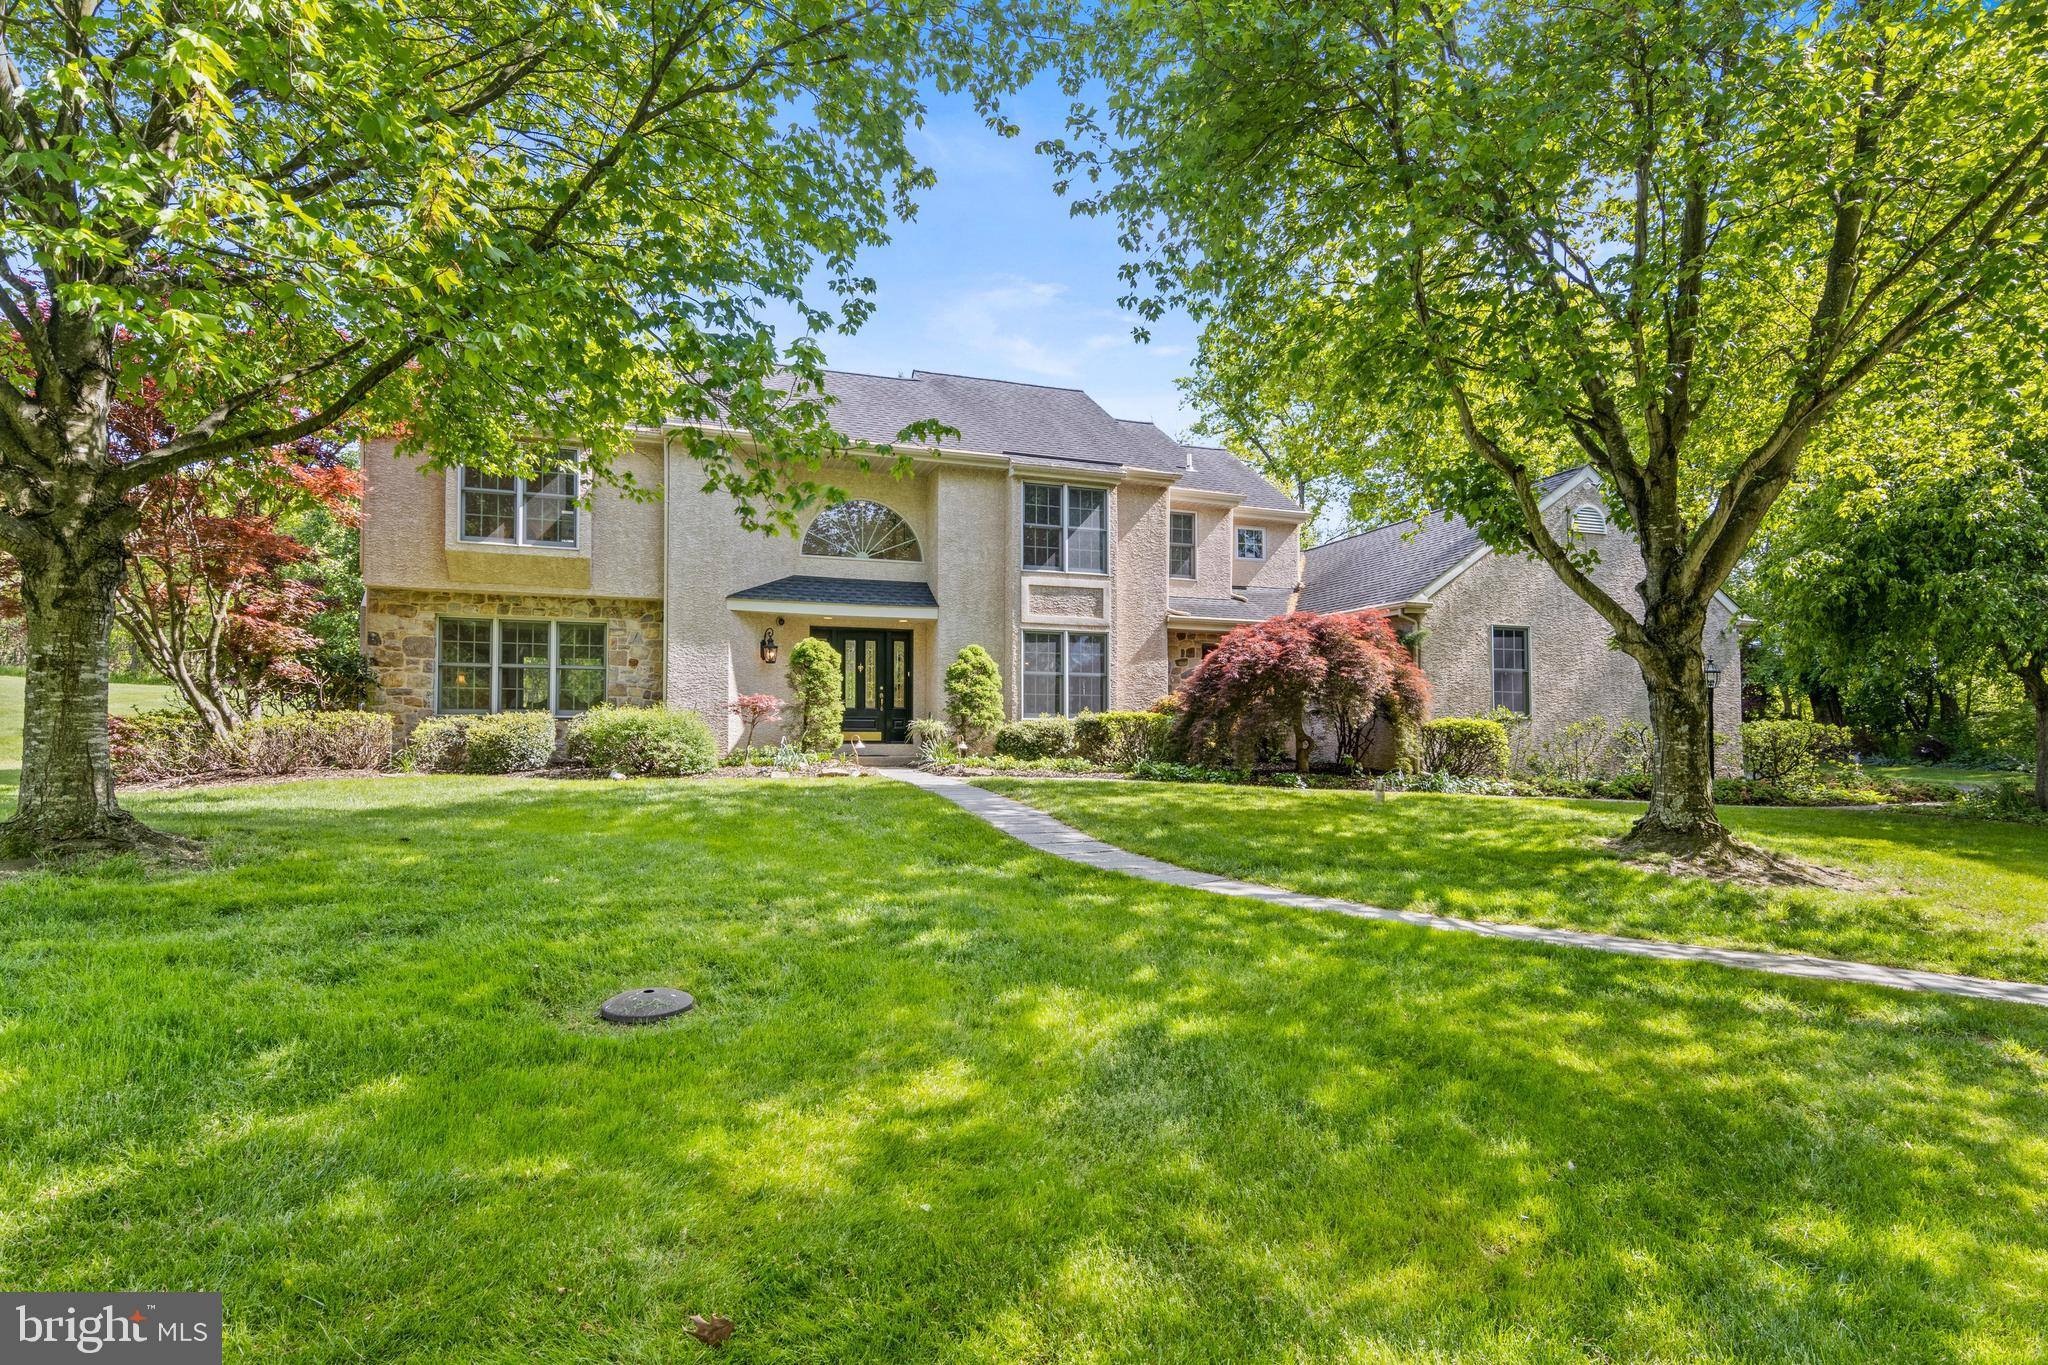 Welcome to this gorgeous 4 BR 3.1 Bath custom home in award-winning Unionville-Chadds Ford School District!  Situated on a gorgeous 4 acre lot, this stunning home has been built to the highest standards and has been meticulously maintained by the original owner!  Established landscaping and trees surround the private grounds.  Soaring 2-story foyer with gleaming hardwood floors is flanked by a Formal Living Room and Formal Dining Room.  Living Room with wood-burning fireplace leads to a rear deck.  The bright and cheery Family Room has 2-story ceilings and numerous windows overlooking the expansive rear yard.  Kitchen offers tons of counter space and storage with a large center island with cooktop, updated stainless appliances, Breakfast Room and large walk-in pantry.  Professional office is adjacent to the Kitchen.  Relax in the 4-Season Sunroom that is heated and cooled and overlooks the custom paver patio and 2nd deck!  Upstairs, the Main Bedroom features a large walk-in closet and Spa-Like Bath!  Down the hall, a Princess Suite has its own Full Bath and large closet.  2 additional large guest Bedrooms and a Center Hall bath complete this level.  So many possibilities for the expansive open 4-acre lot! Whole House GENERAC Generator.  Easy access to all major routes and minutes to downtown West Chester borough.  This home has so much to offer!